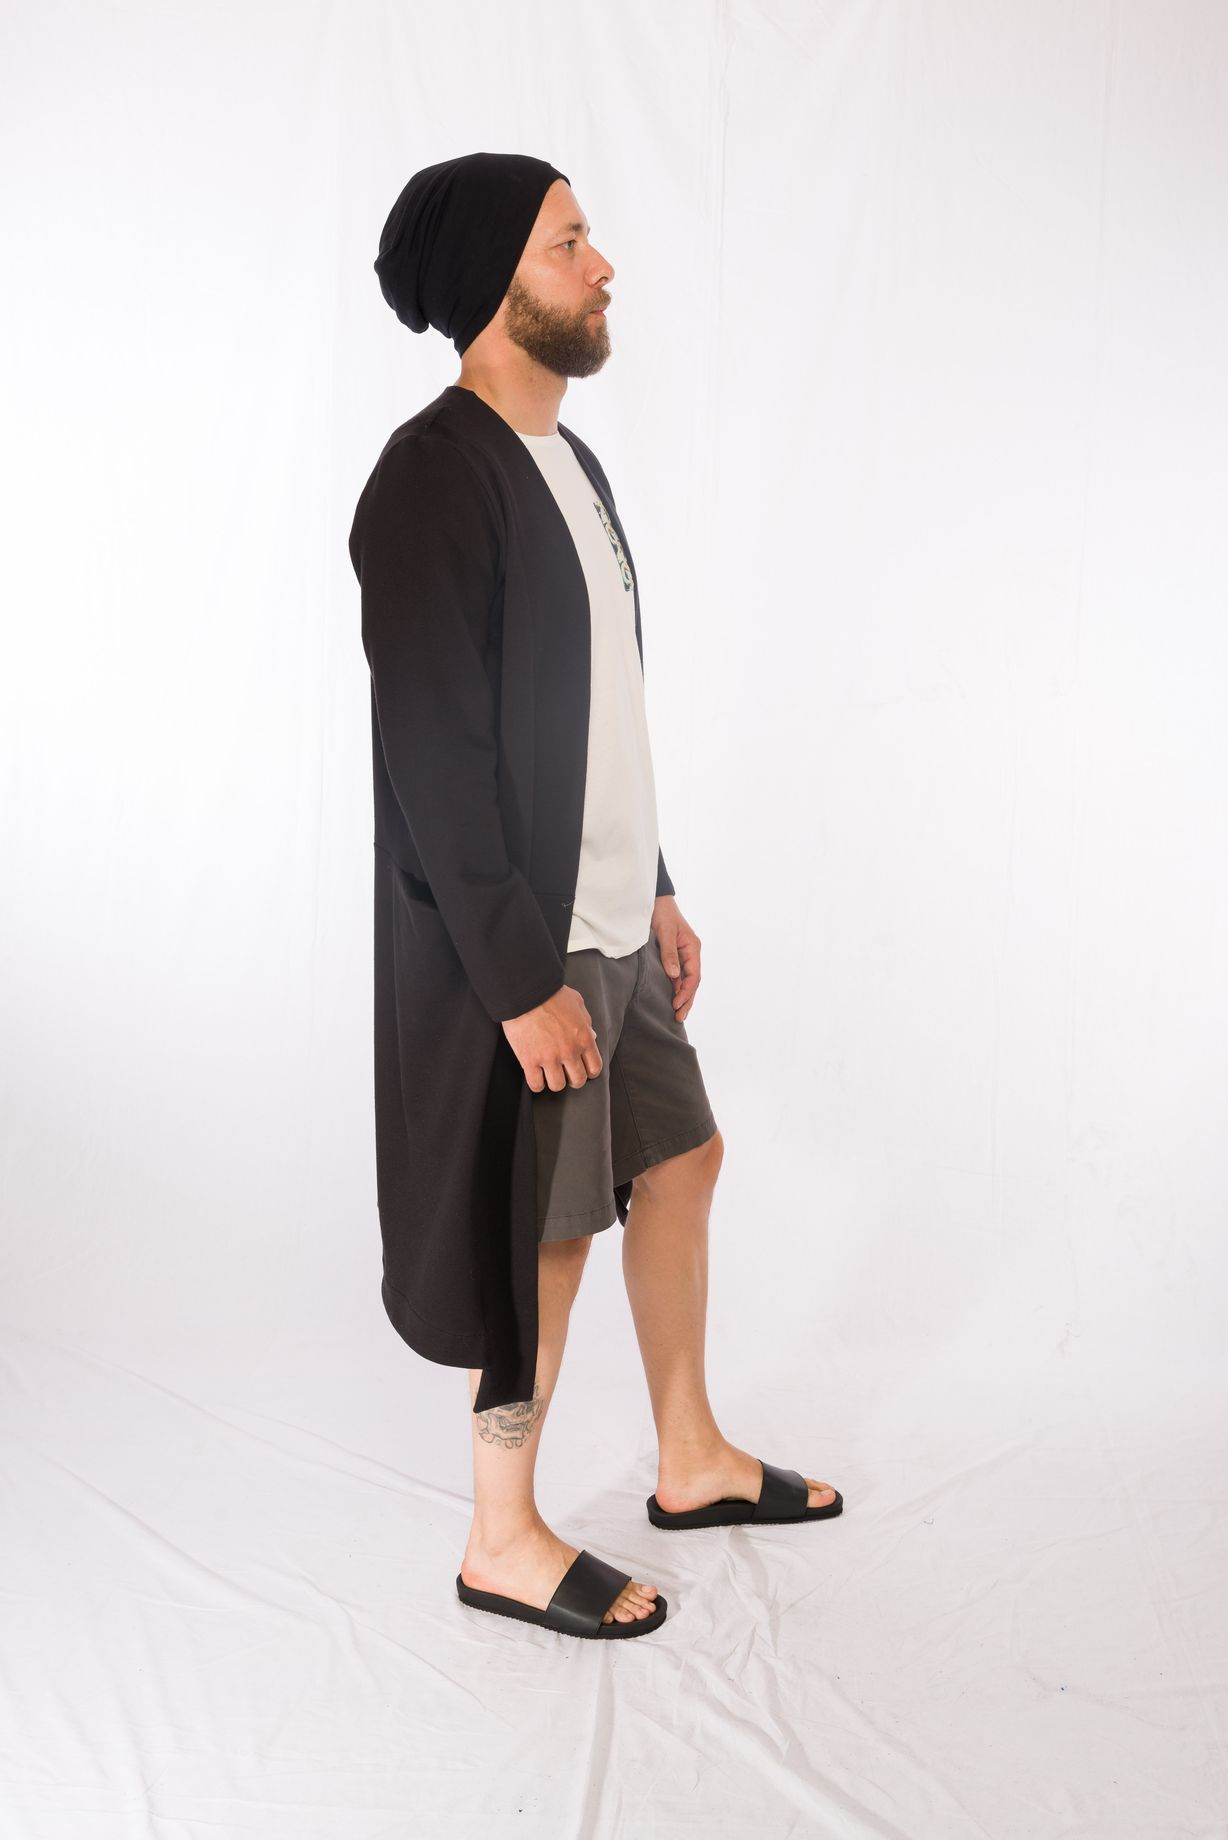 Shirt Aries _ Longcoat Juno _ Beanie Black